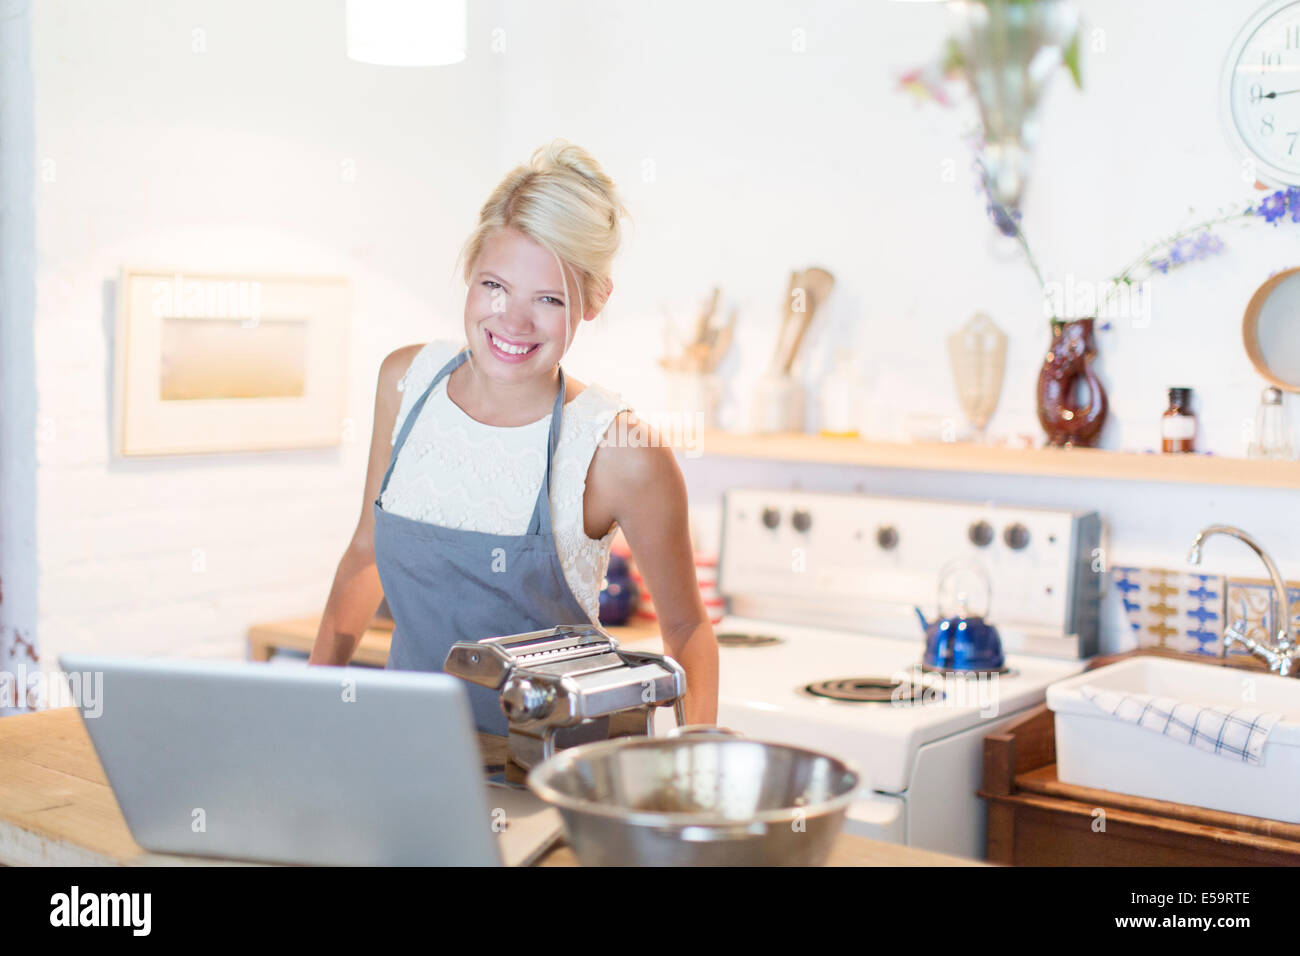 Woman at laptop cooking in kitchen - Stock Image